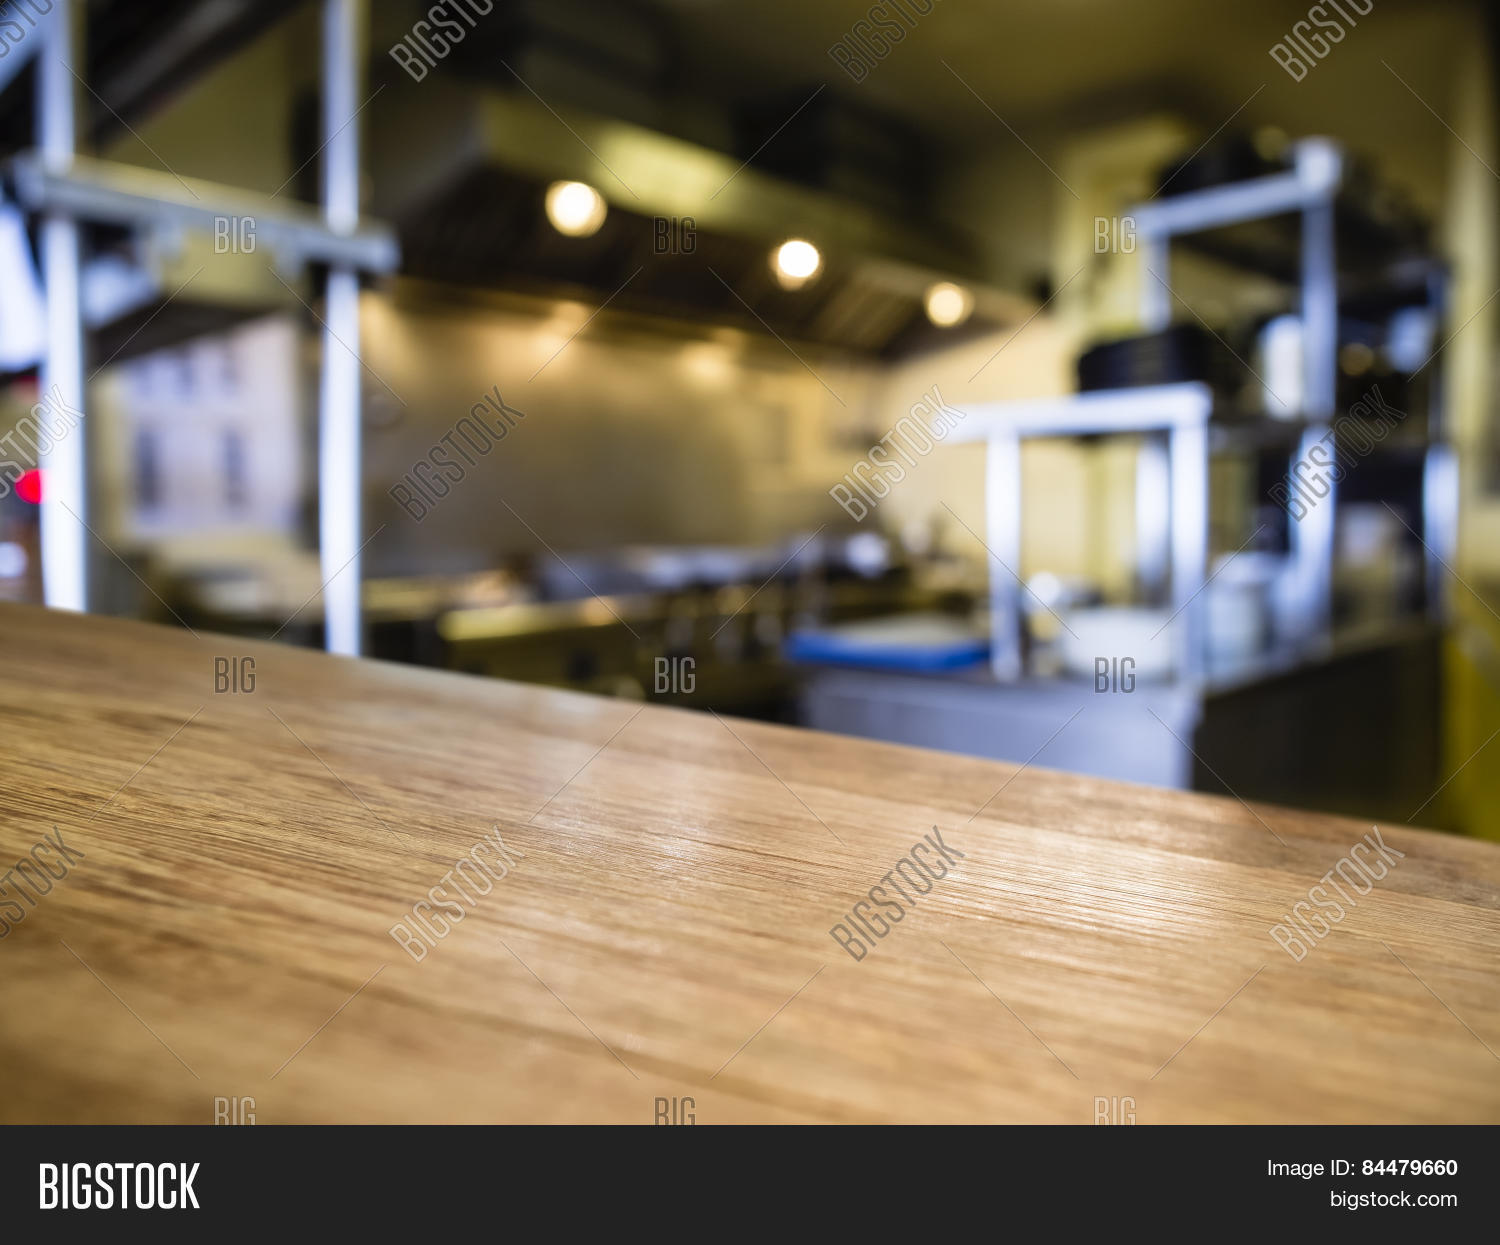 Restaurant Kitchen Background Top Wooden Table Counter Blurred Image & Photo  Bigstock